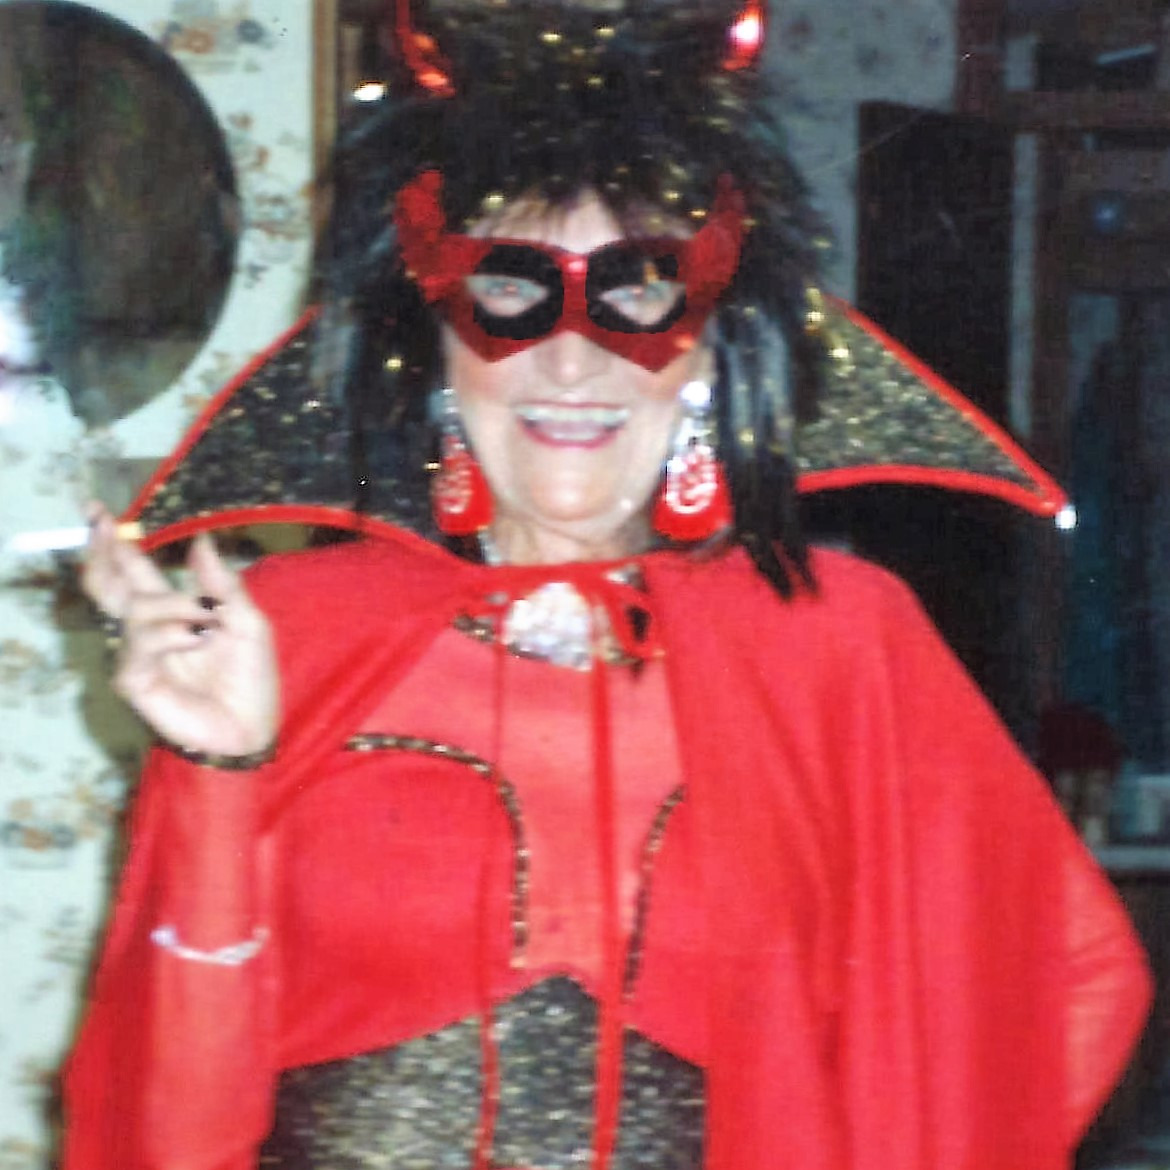 Nanny as a devil_edited